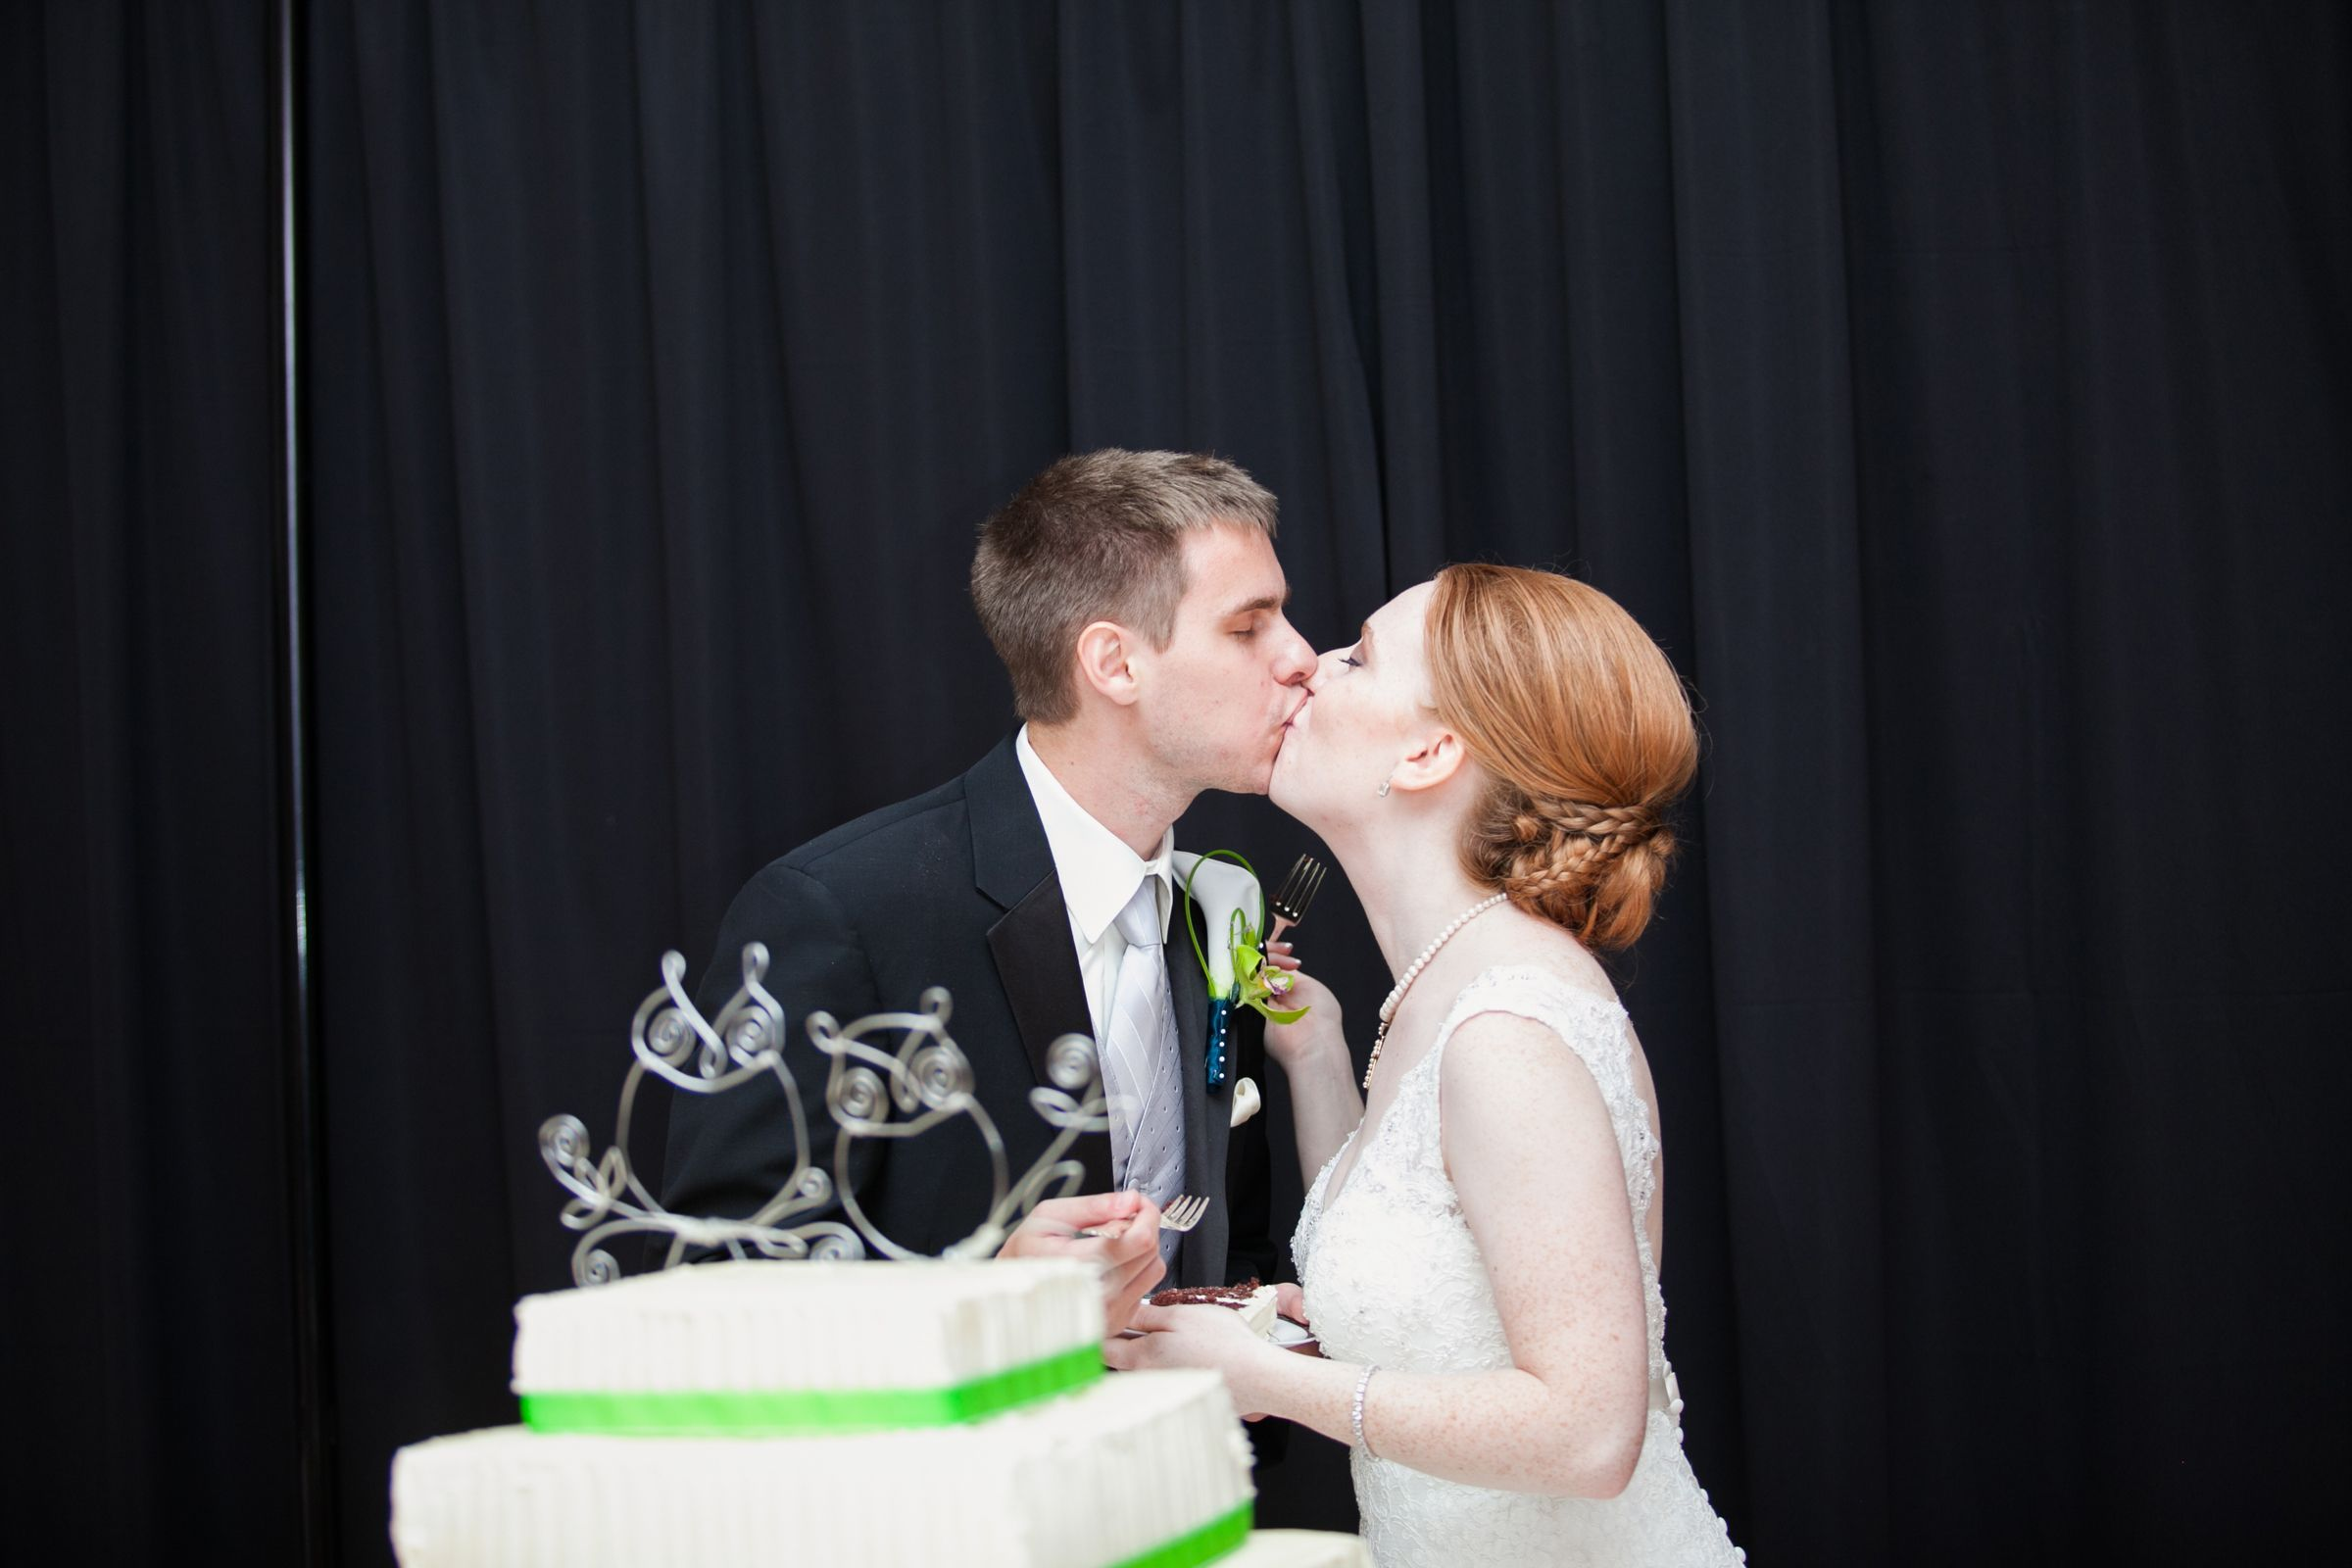 cutting the cake with owl cake toppers.  Sidenote, my AMAZING sister-in-law made that gorgeous cake.